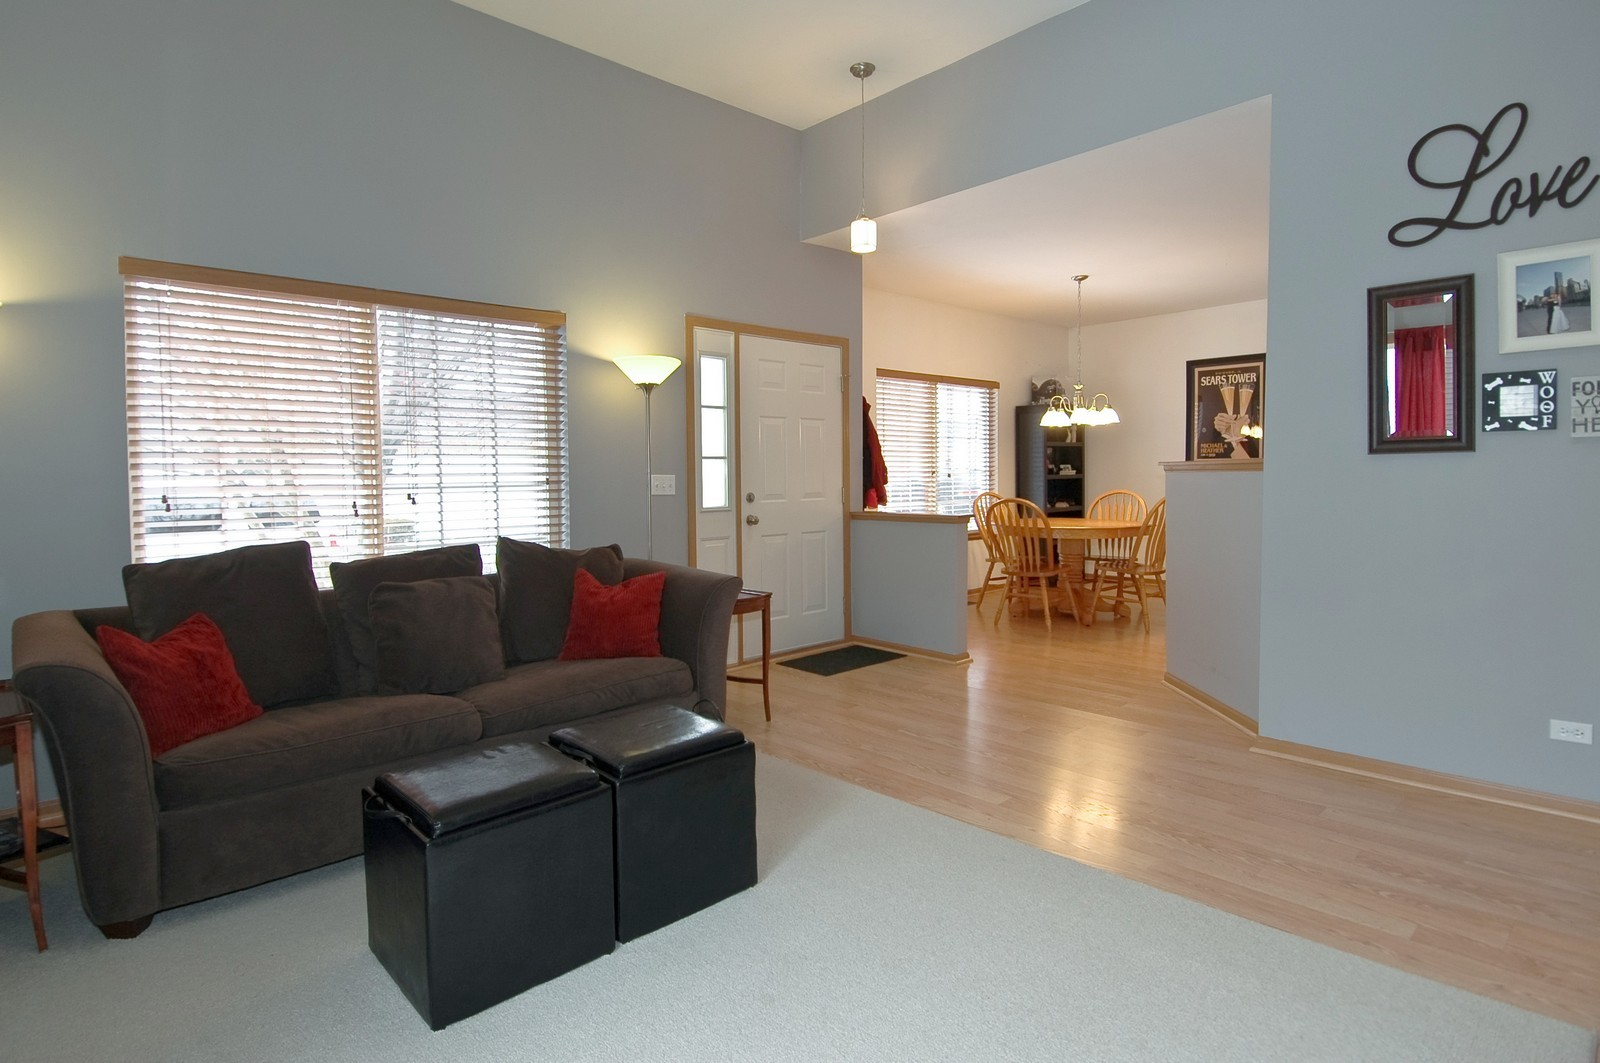 Real Estate Photography - 285 Nicole Dr, Unit F, South Elgin, IL, 60177 - Living Room / Dining Room